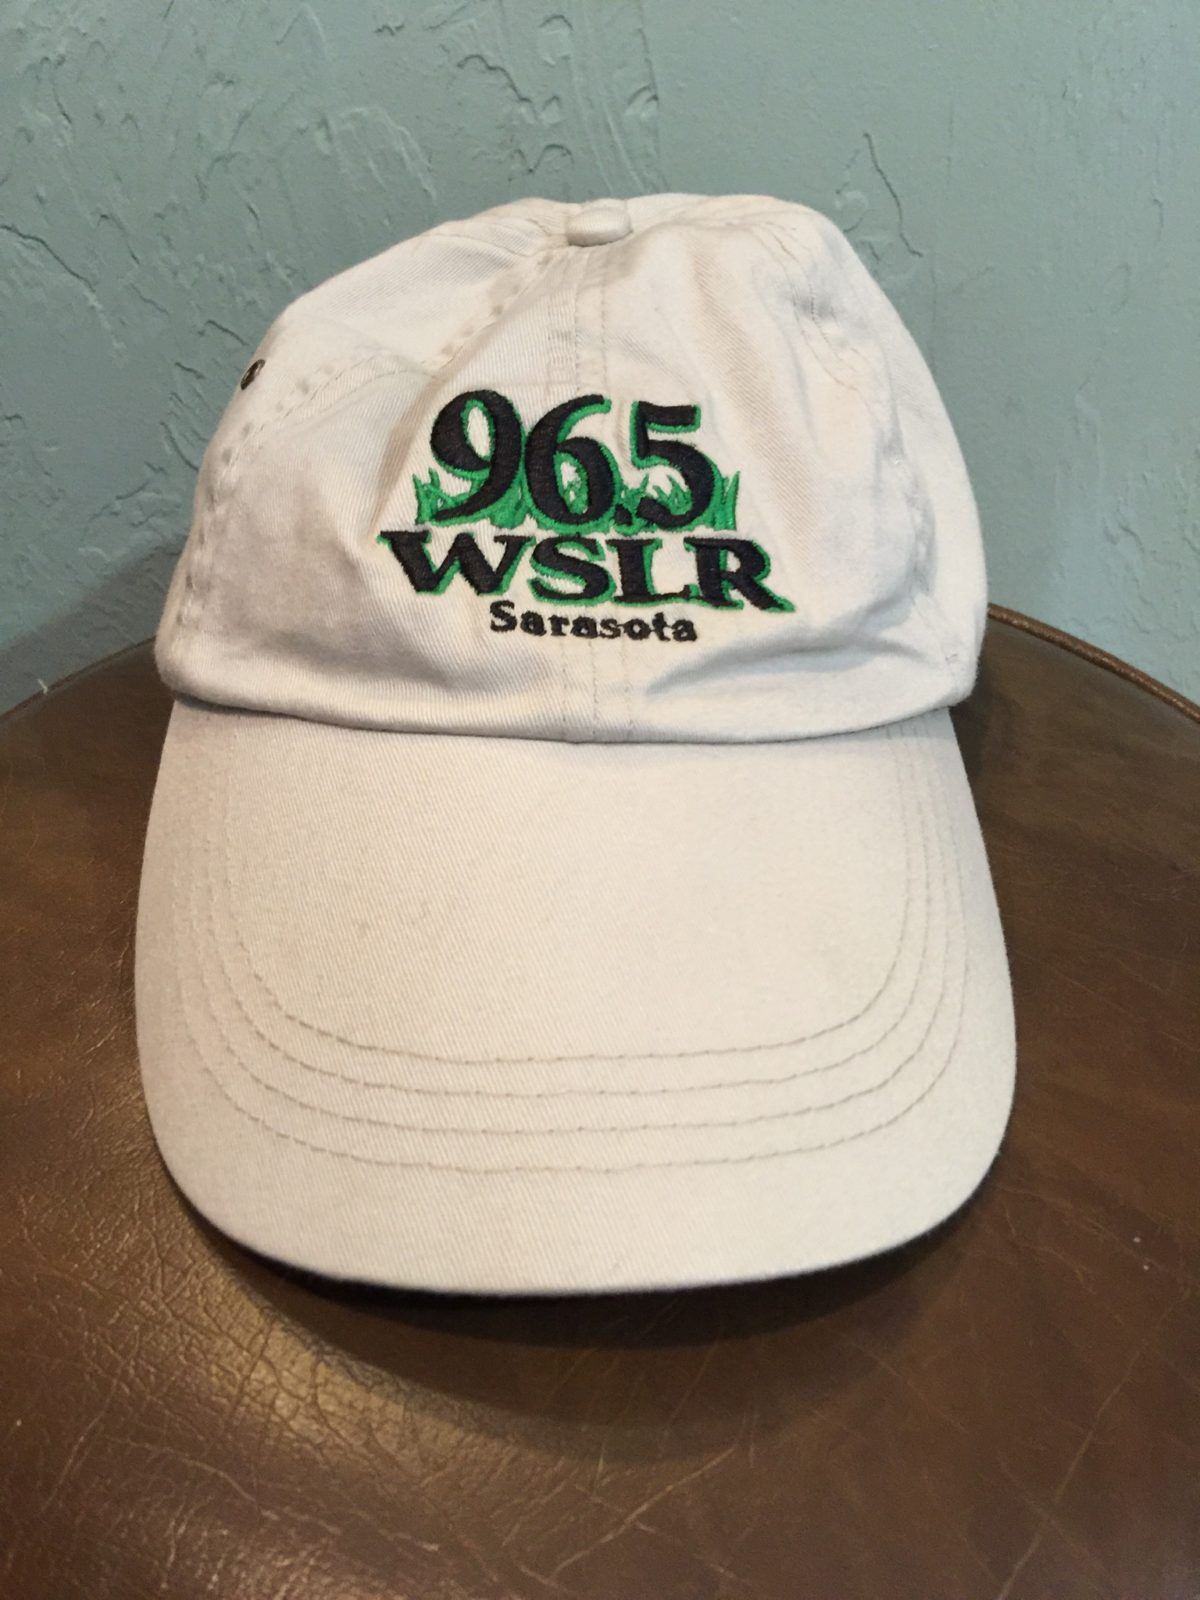 WSLR baseball cap, light tan